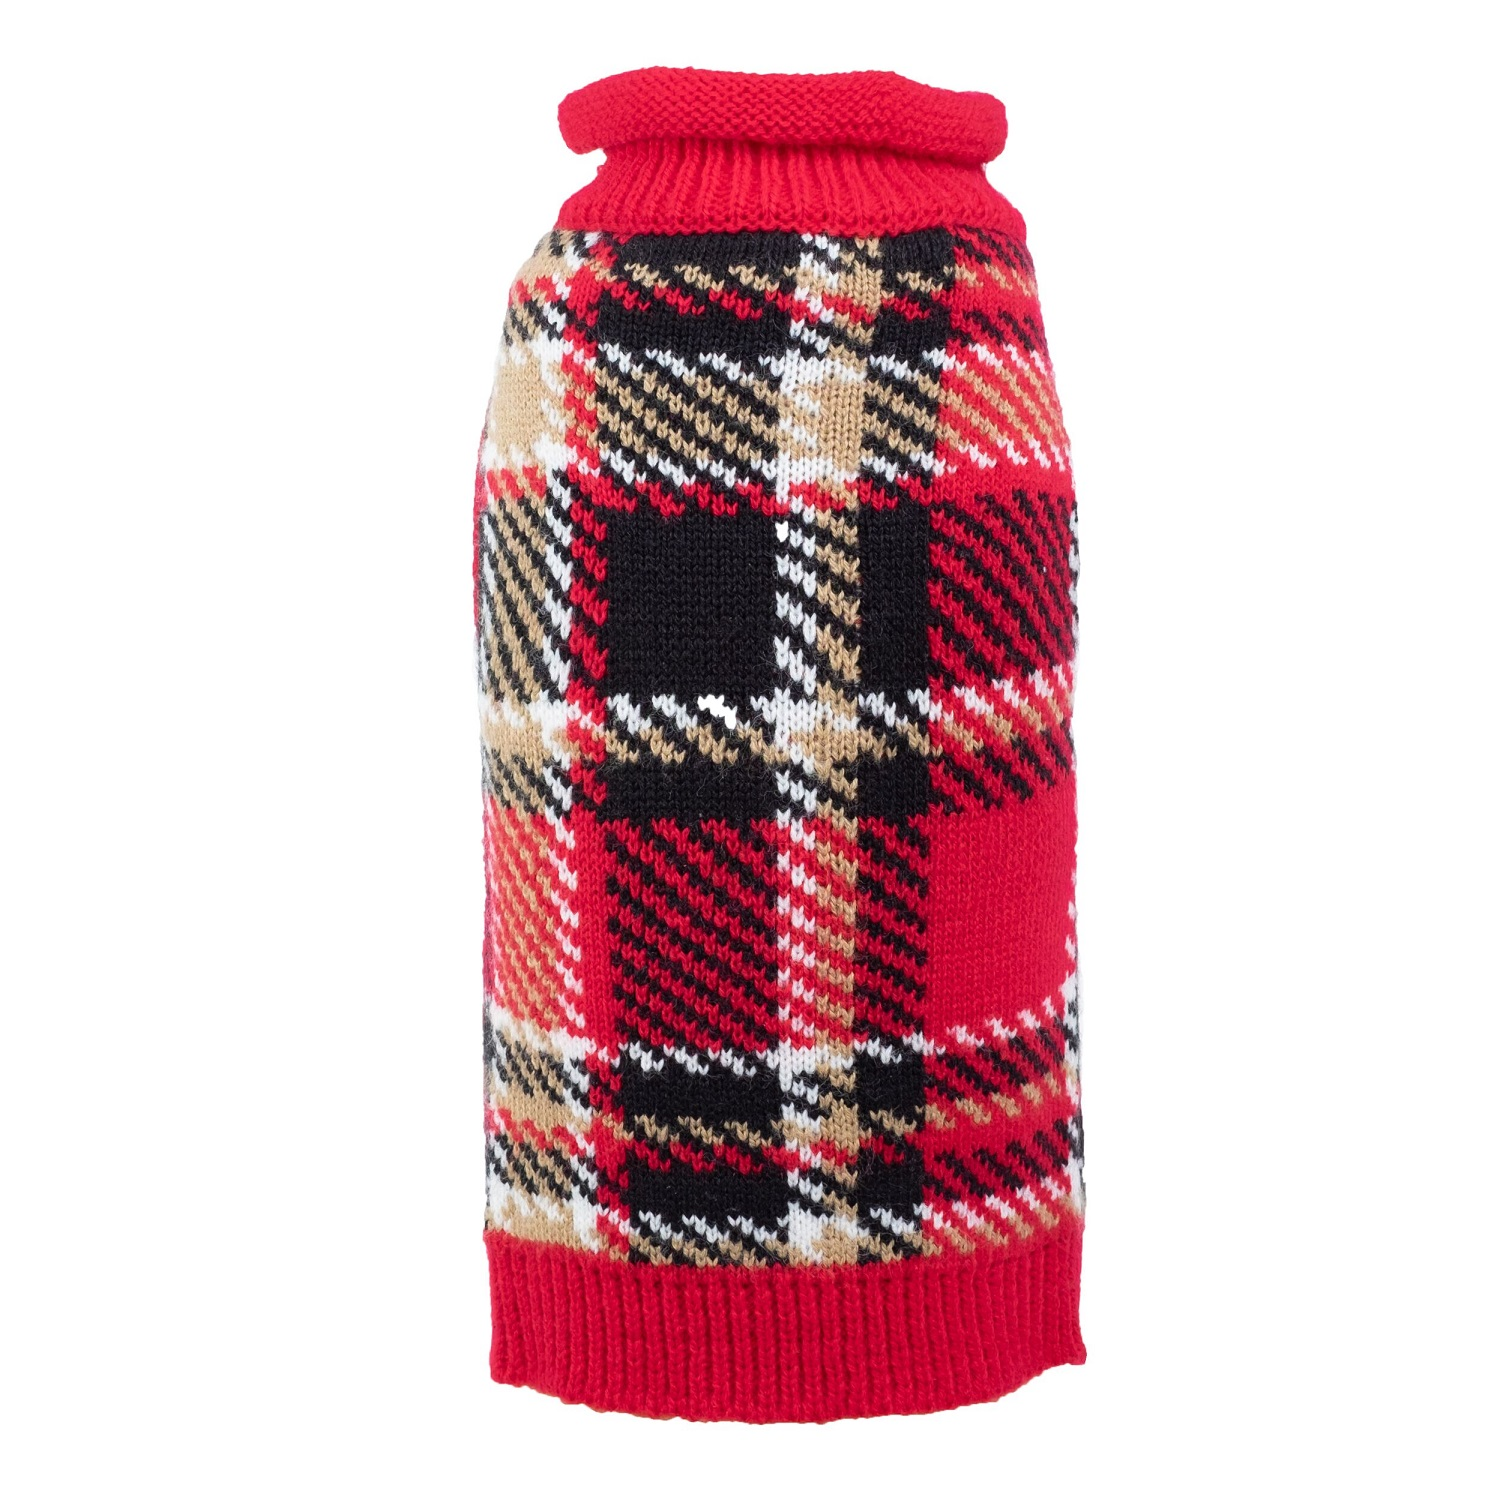 The Worthy Dog Sweater, Red Plaid, X-Small